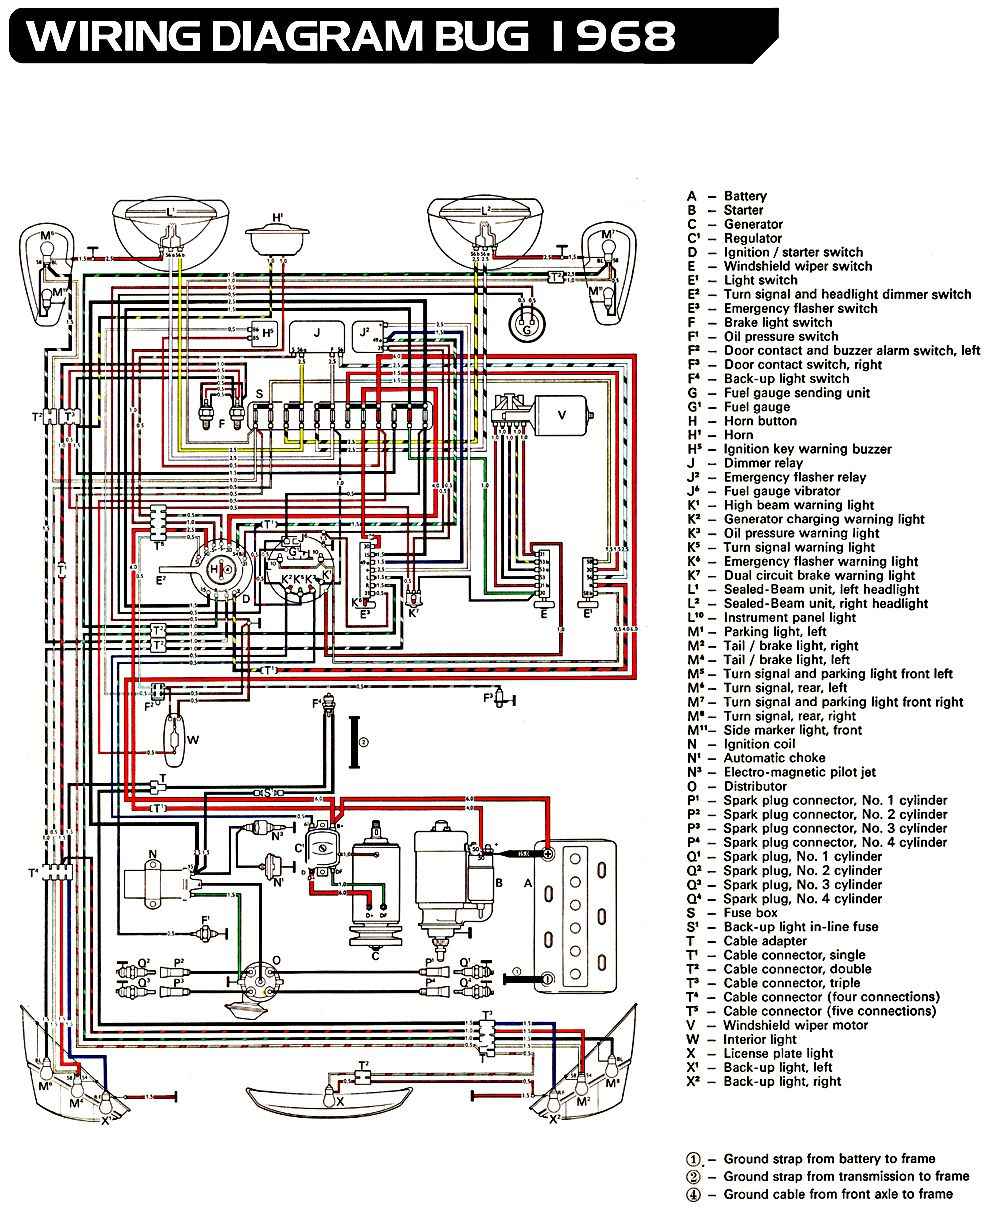 3a1908112d3826270ed5e3be362292bf vw bug ignition wiring diagram 73 vw wiring diagram free 72 vw bus wiring diagram at alyssarenee.co